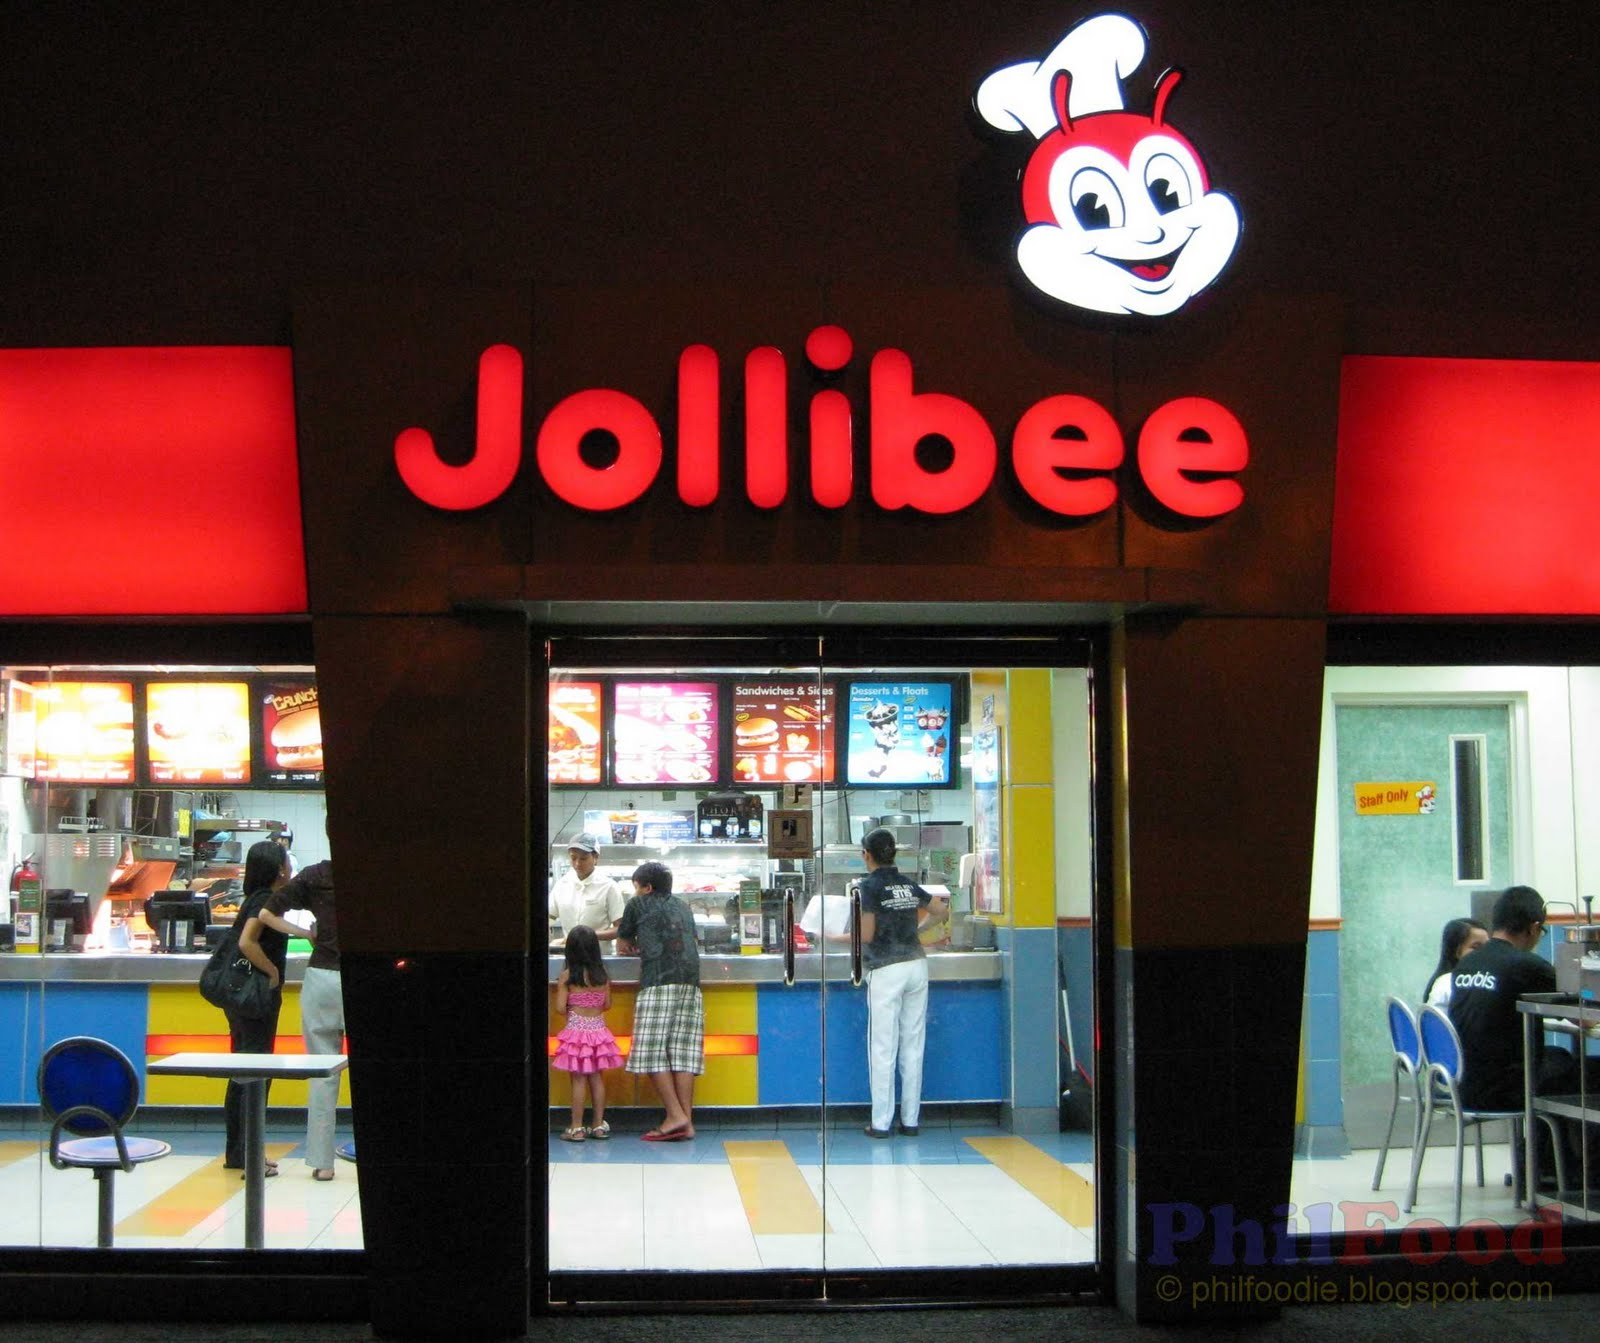 jollibee sanitation Essays - largest database of quality sample essays and research papers on jollibee food and safety studymode - premium and free essays poor sanitation.